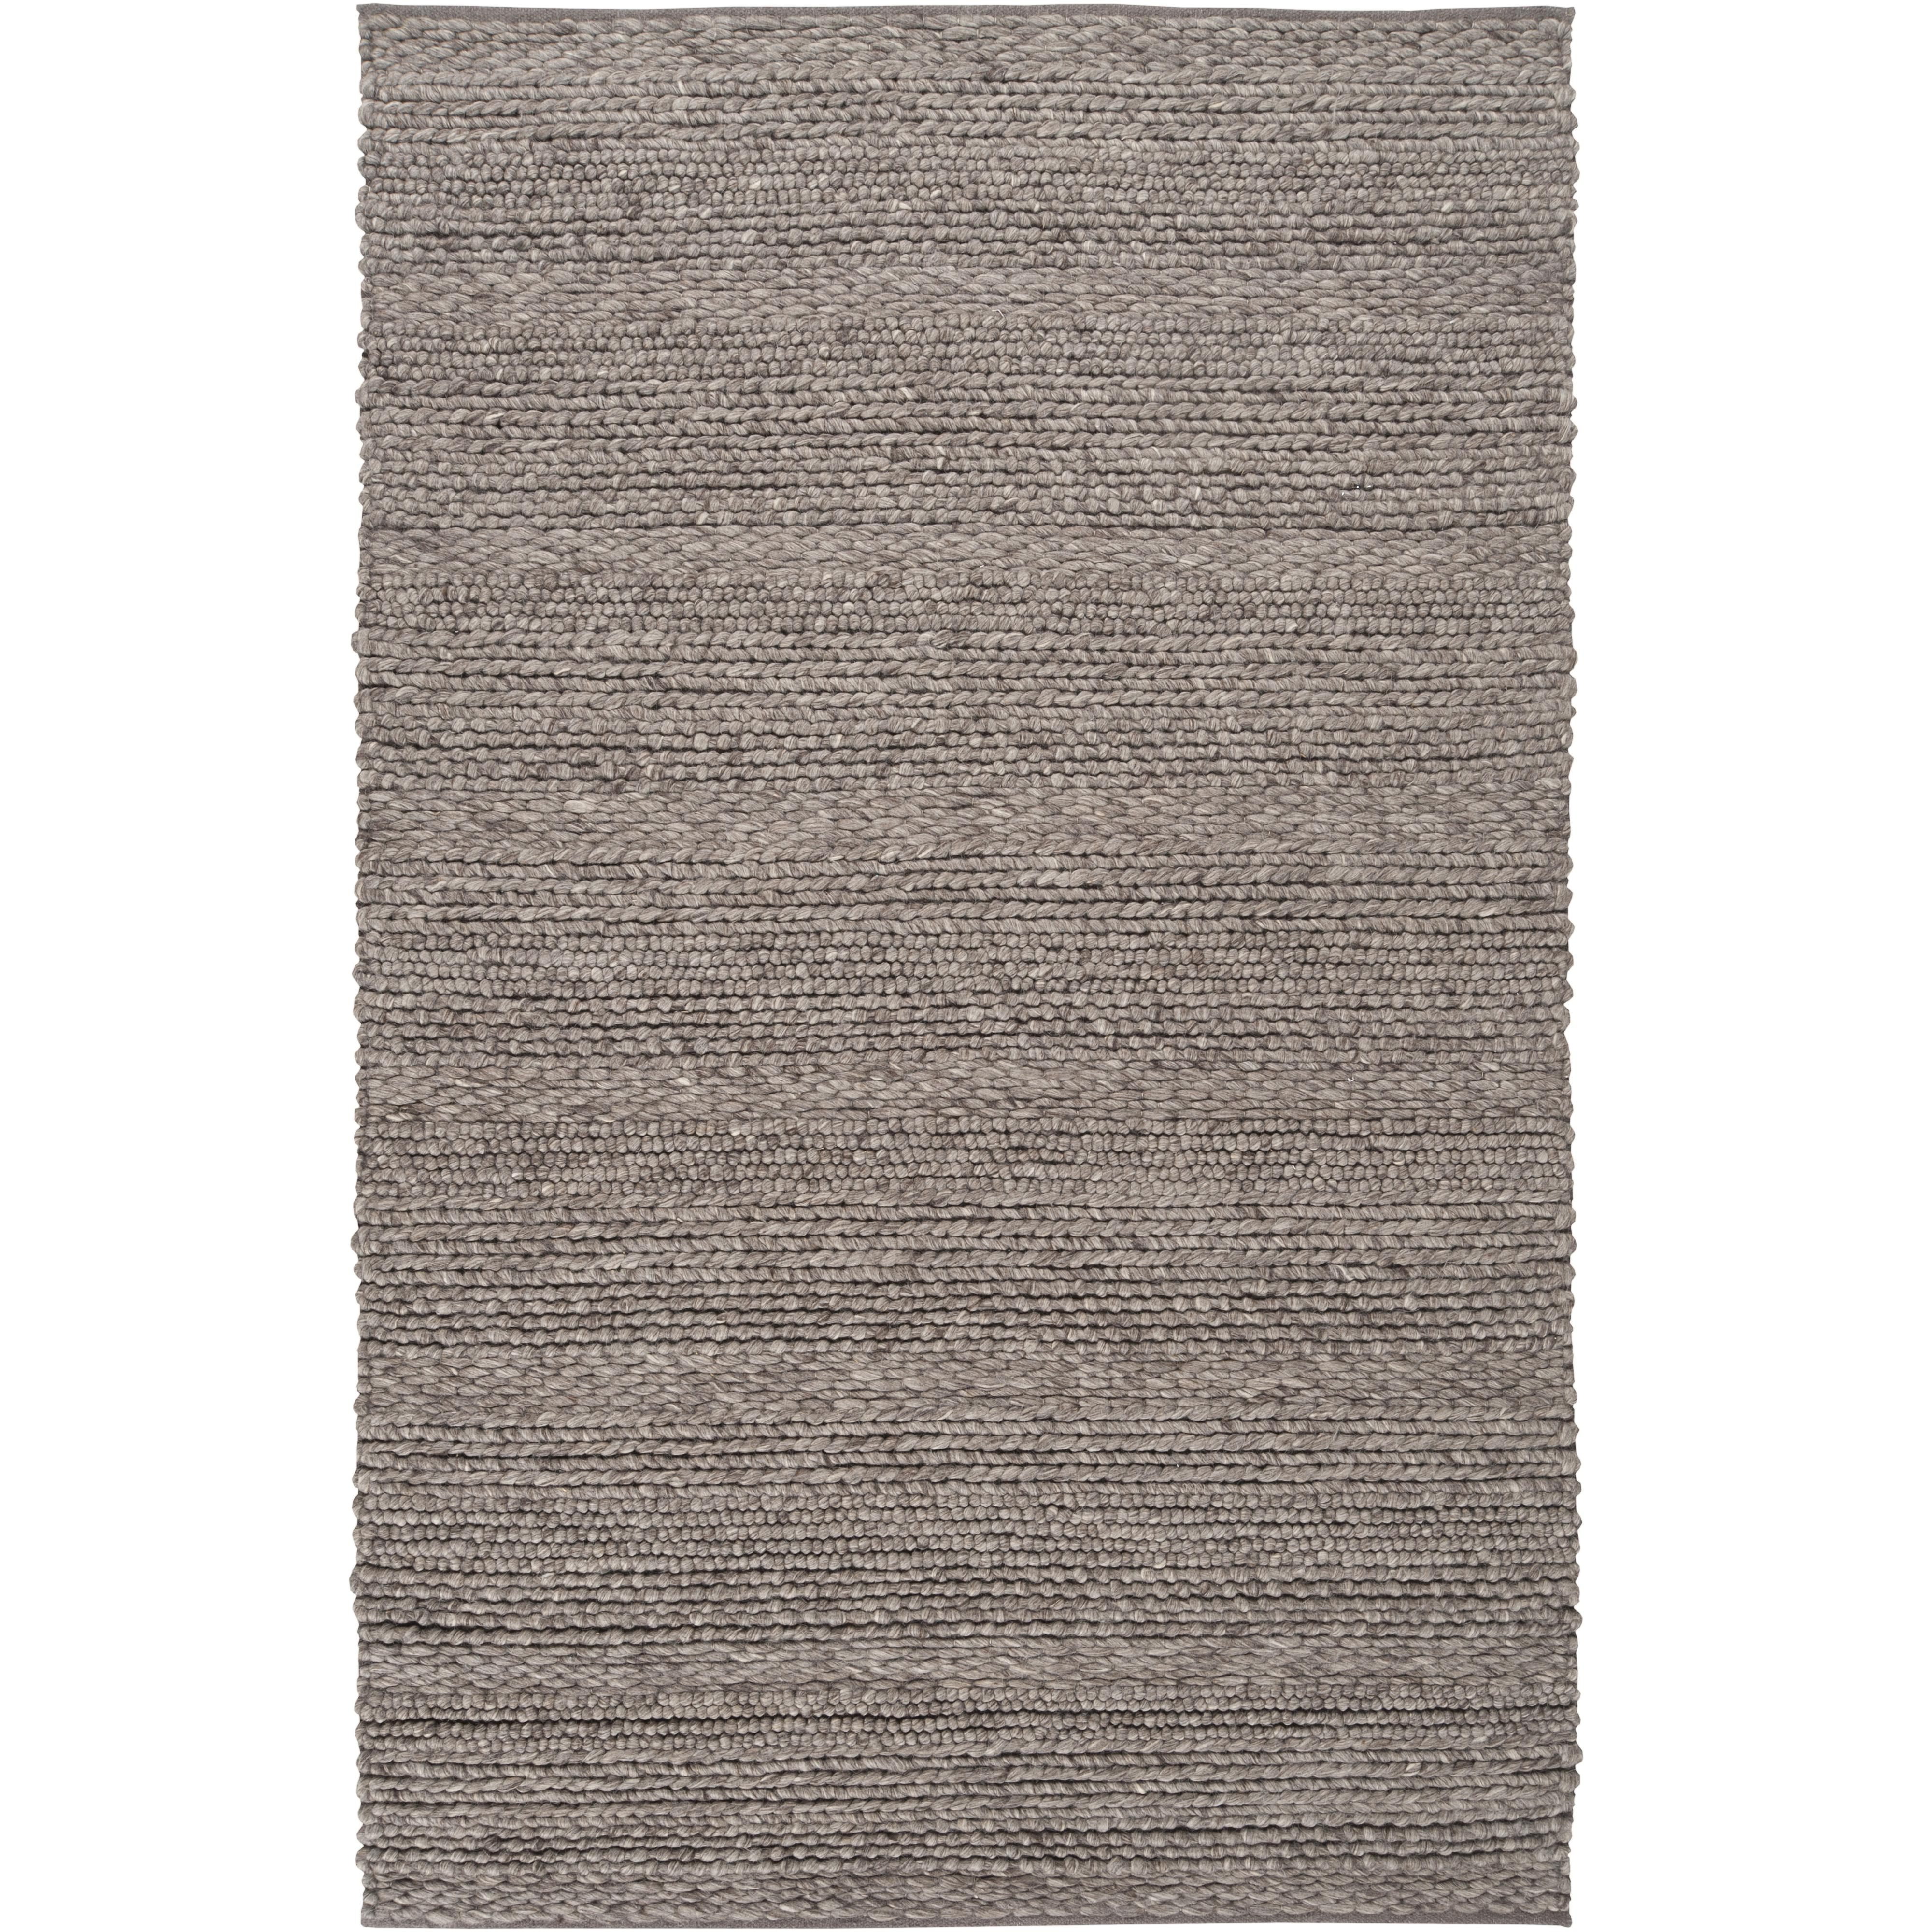 Tahoe 3' x 5' by Ruby-Gordon Accents at Ruby Gordon Home